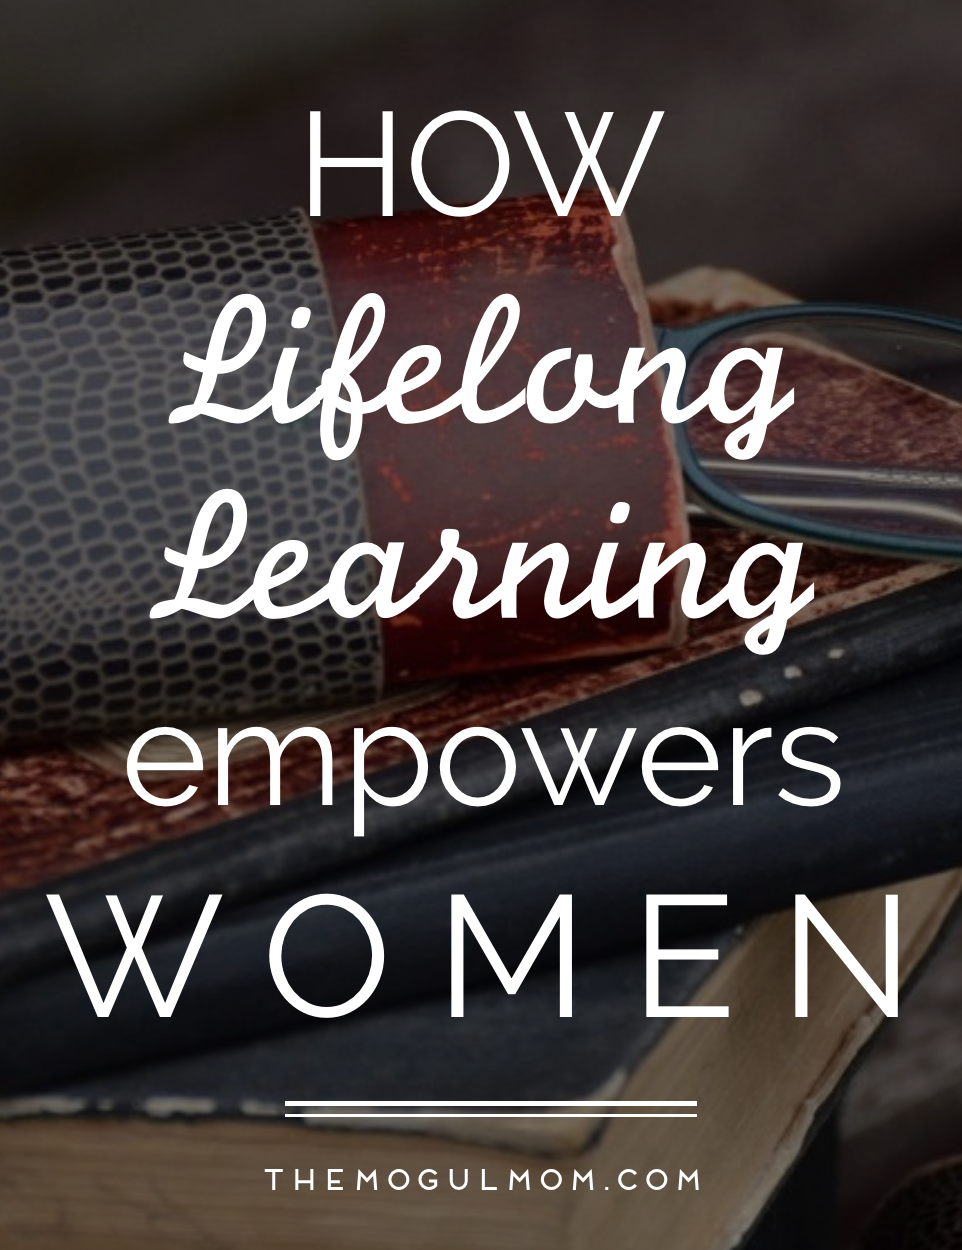 How Lifelong Learning Empowers Women